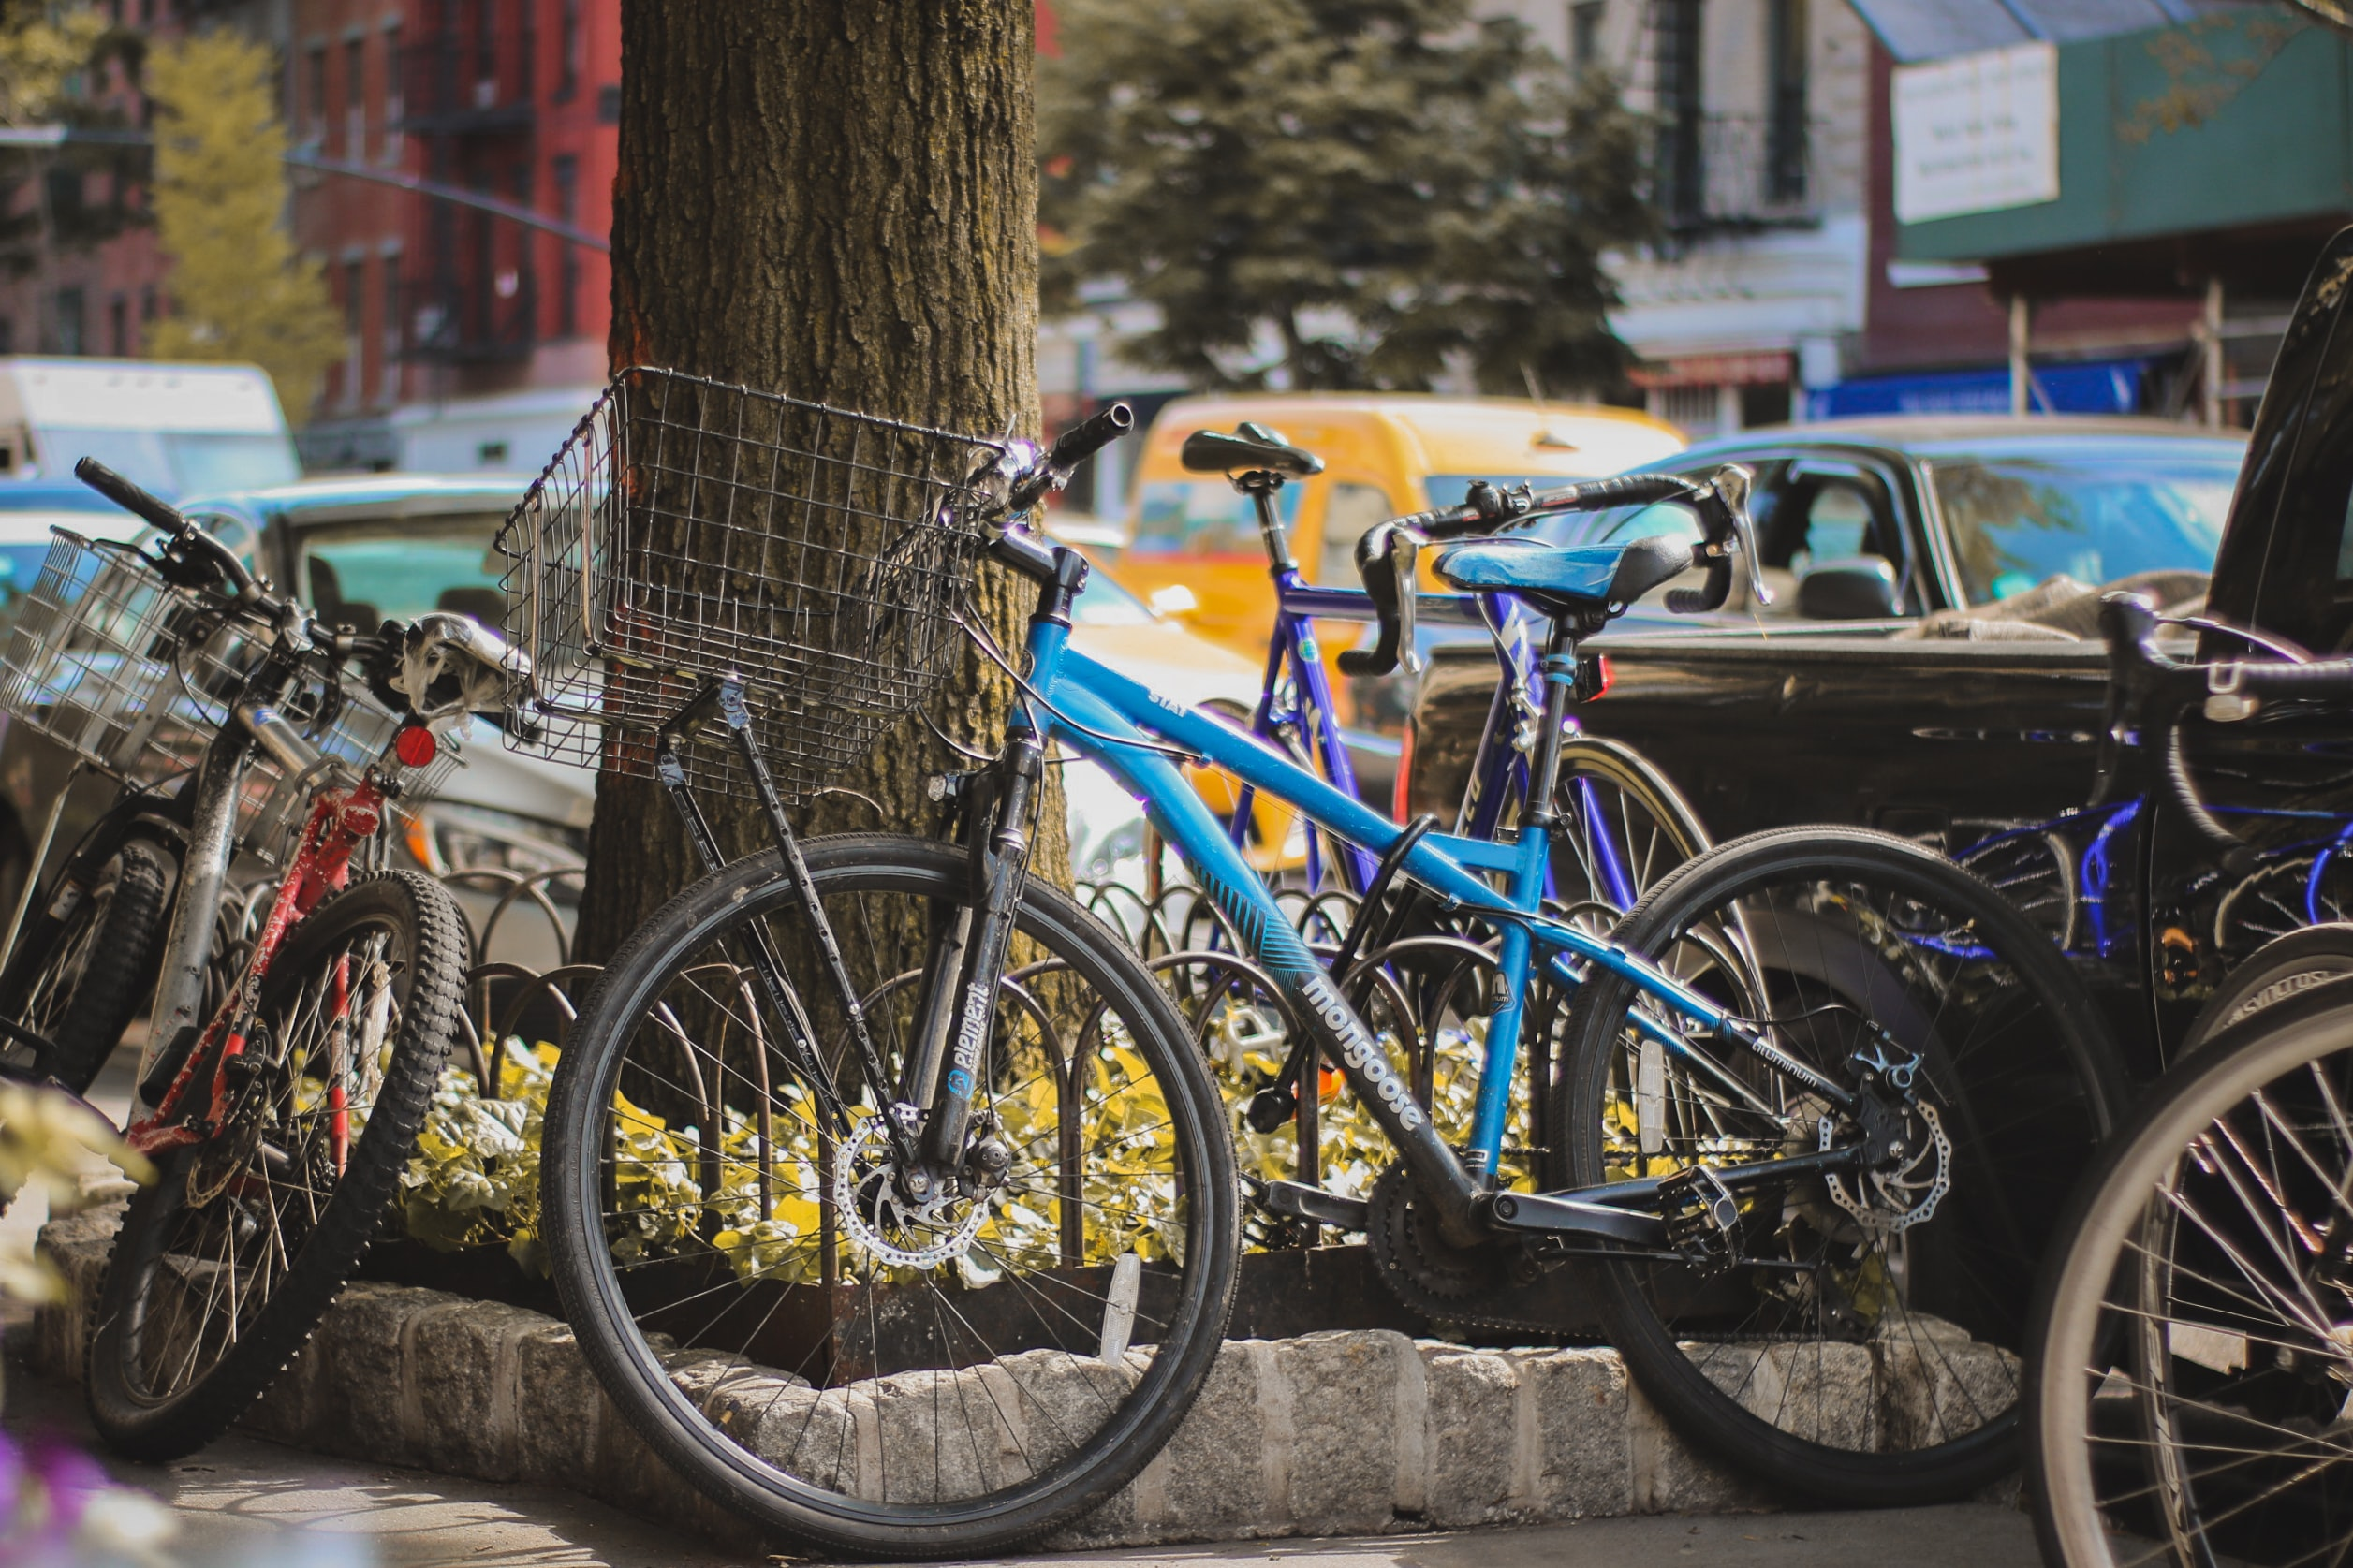 Bicycles parked and leaning against a tree in the city